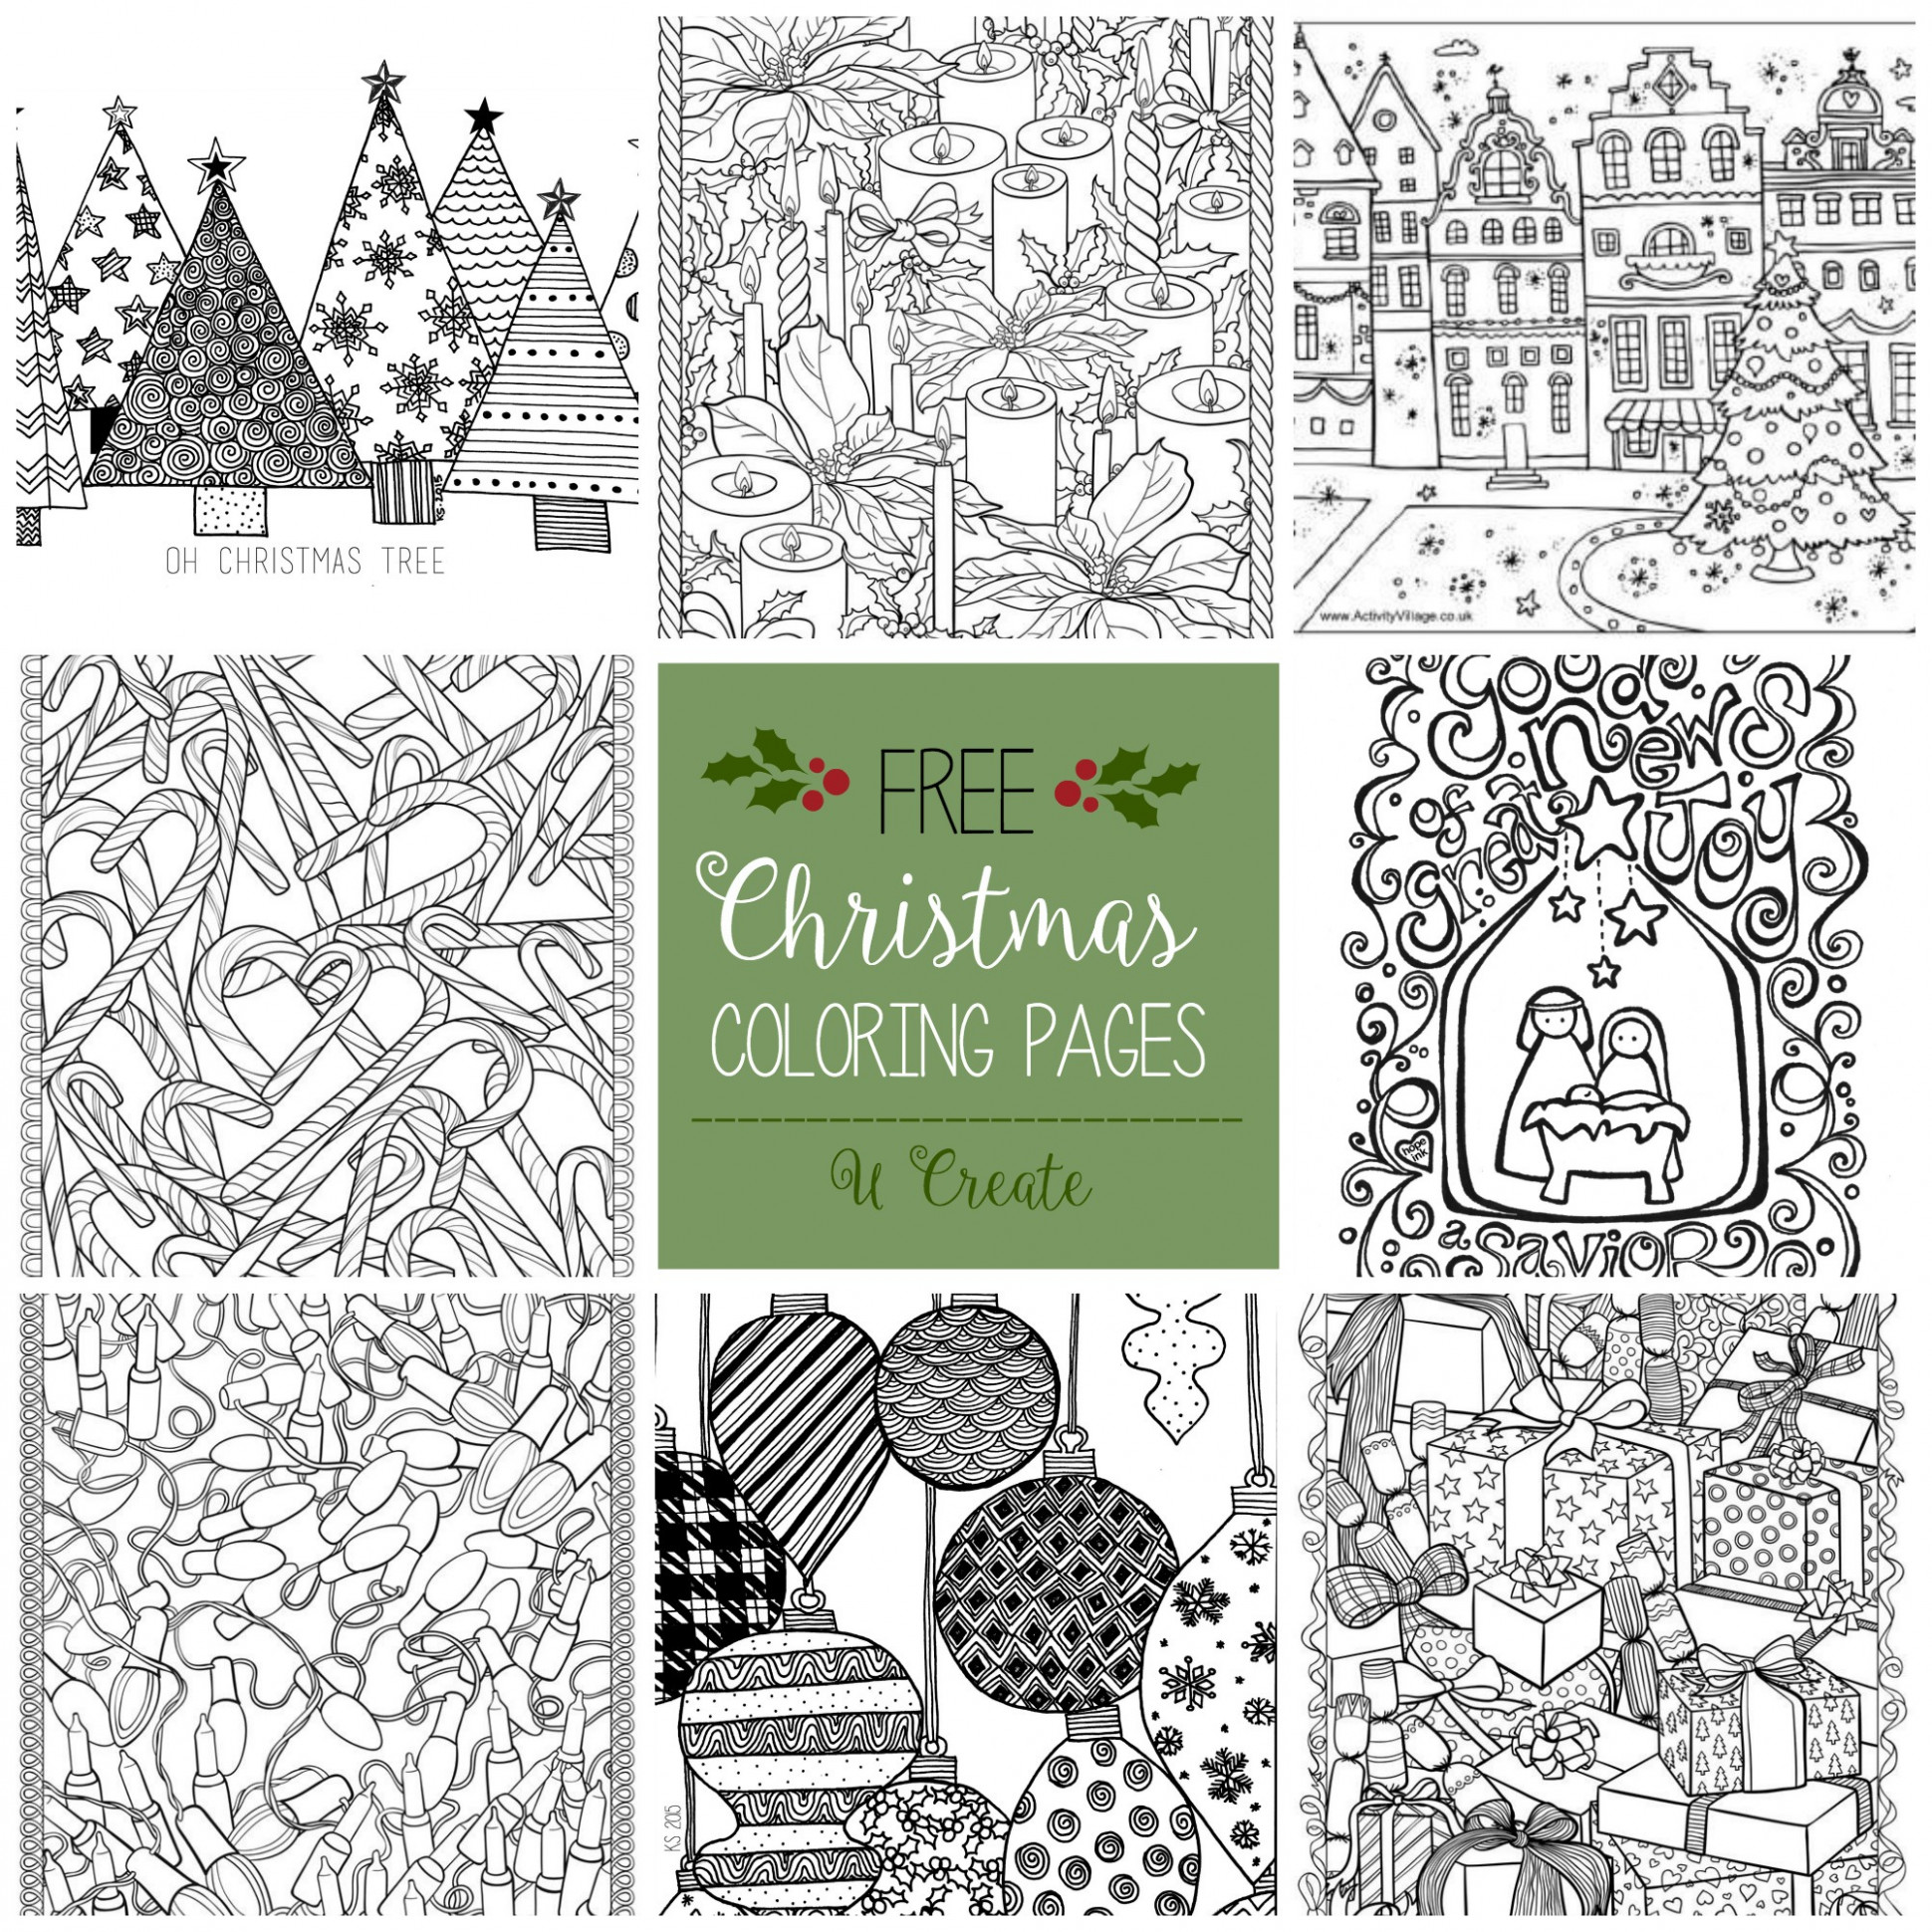 Free Christmas Adult Coloring Pages – U Create – Christmas Coloring Free